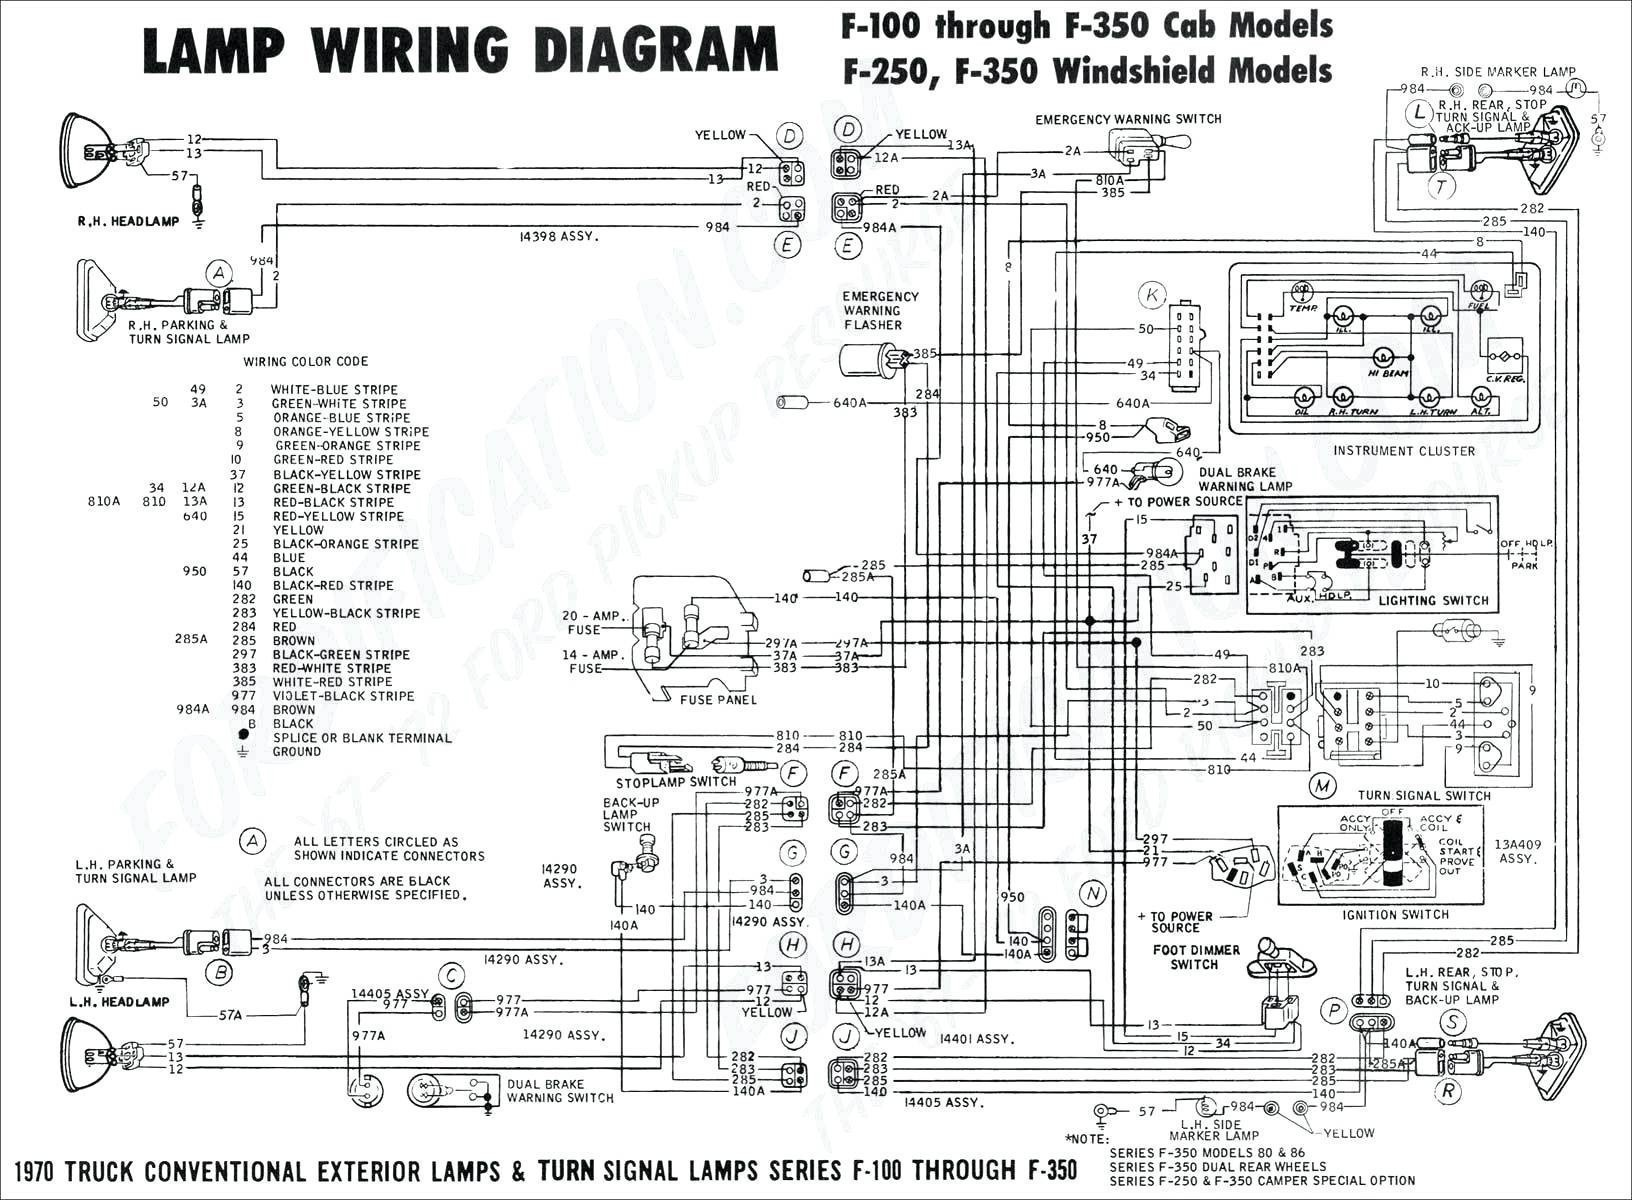 1991 Plymouth Acclaim Fuse Box Diagram